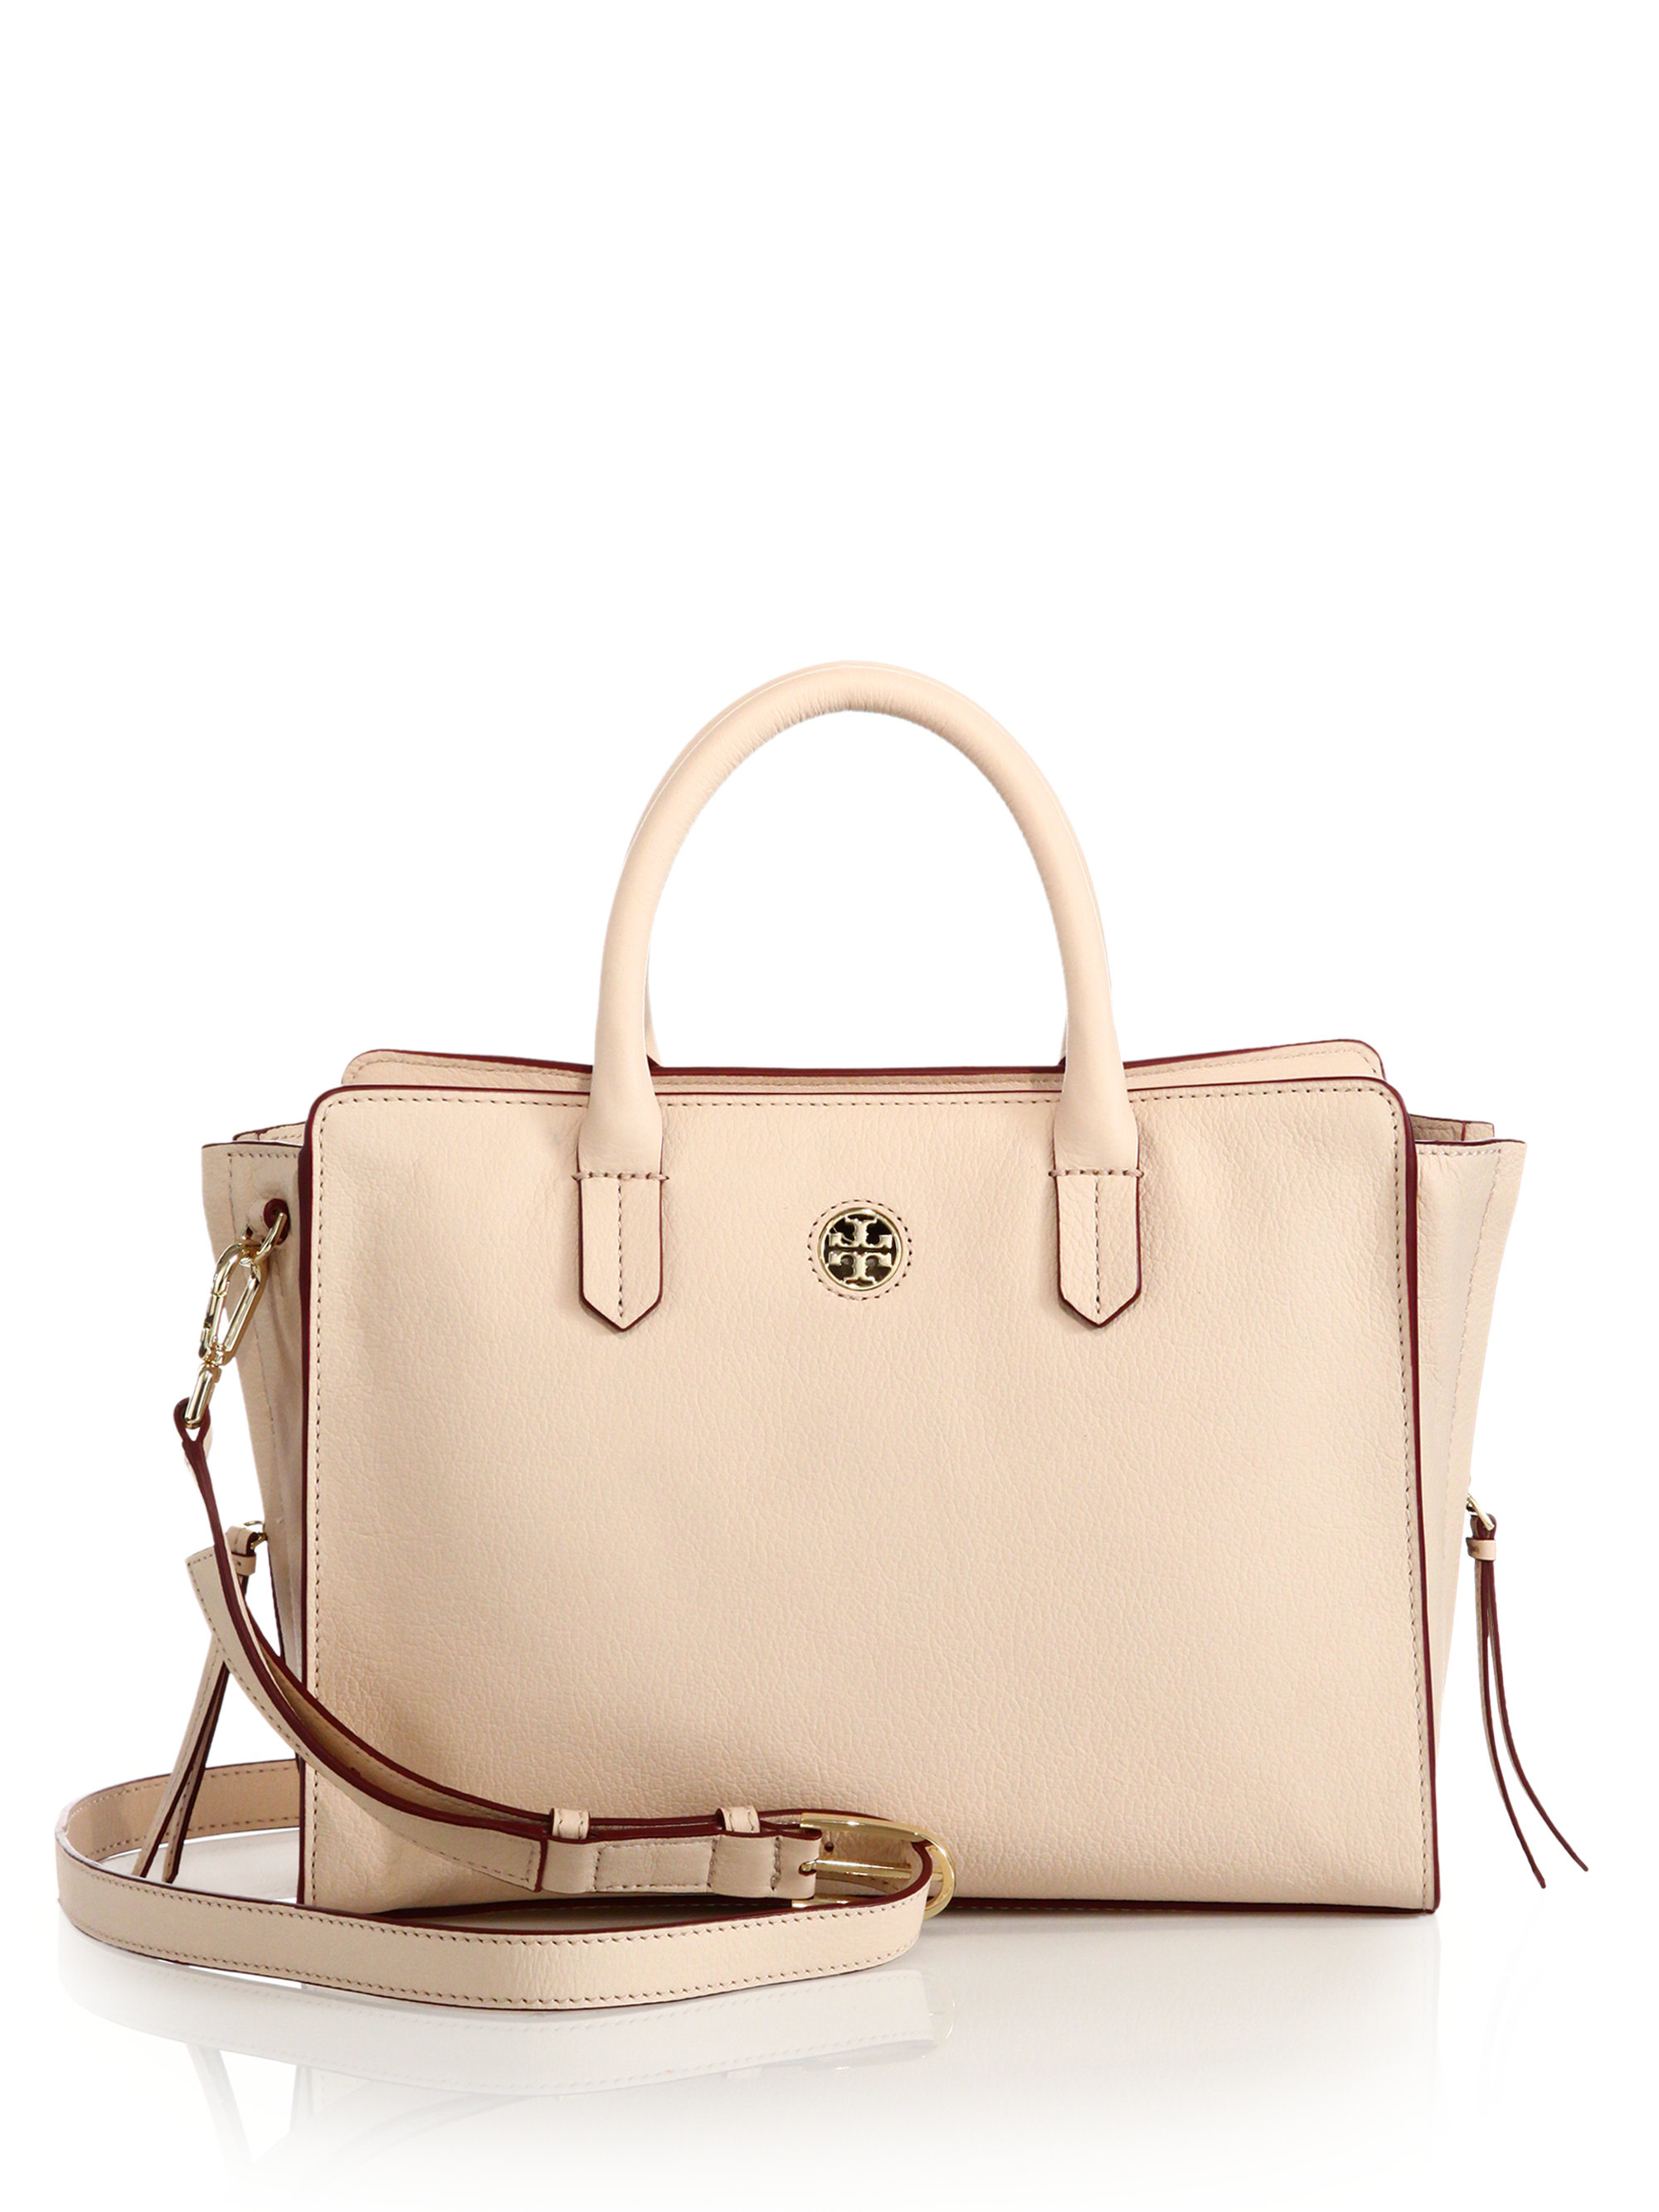 d029226bddd Lyst - Tory Burch Brody Small Leather Tote in Natural